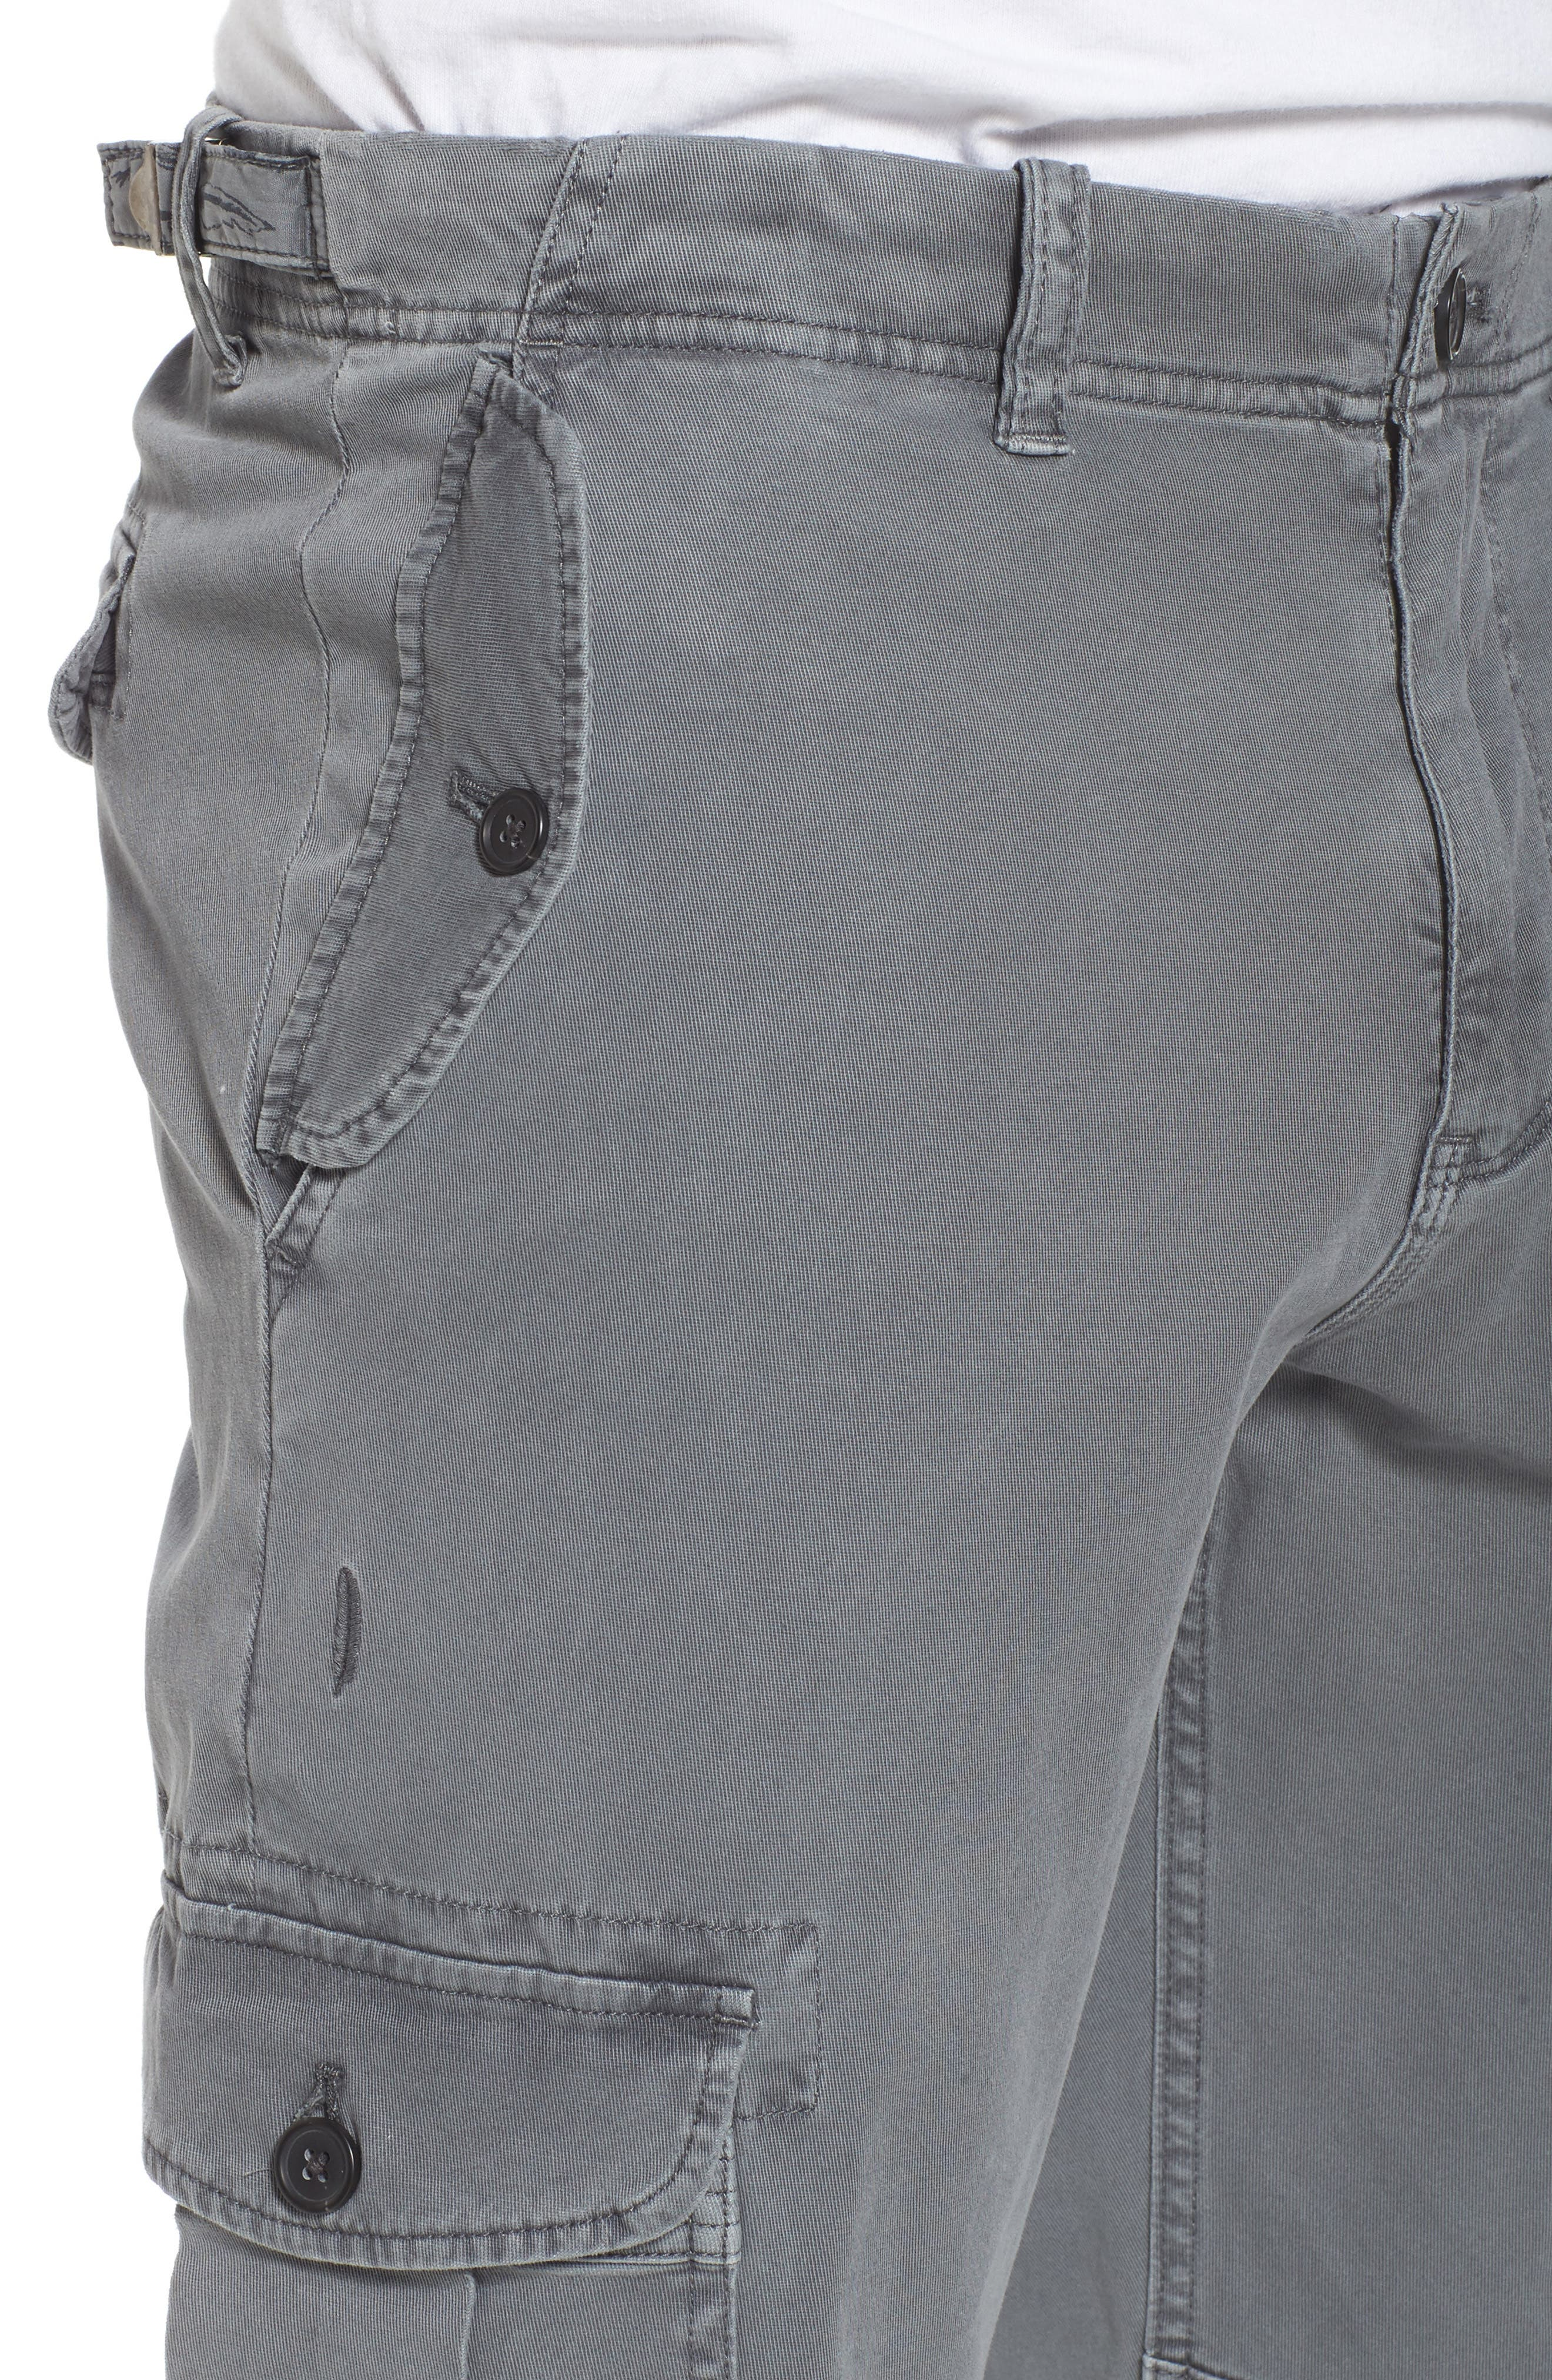 Stretch Twill Cargo Pants,                             Alternate thumbnail 4, color,                             Gray